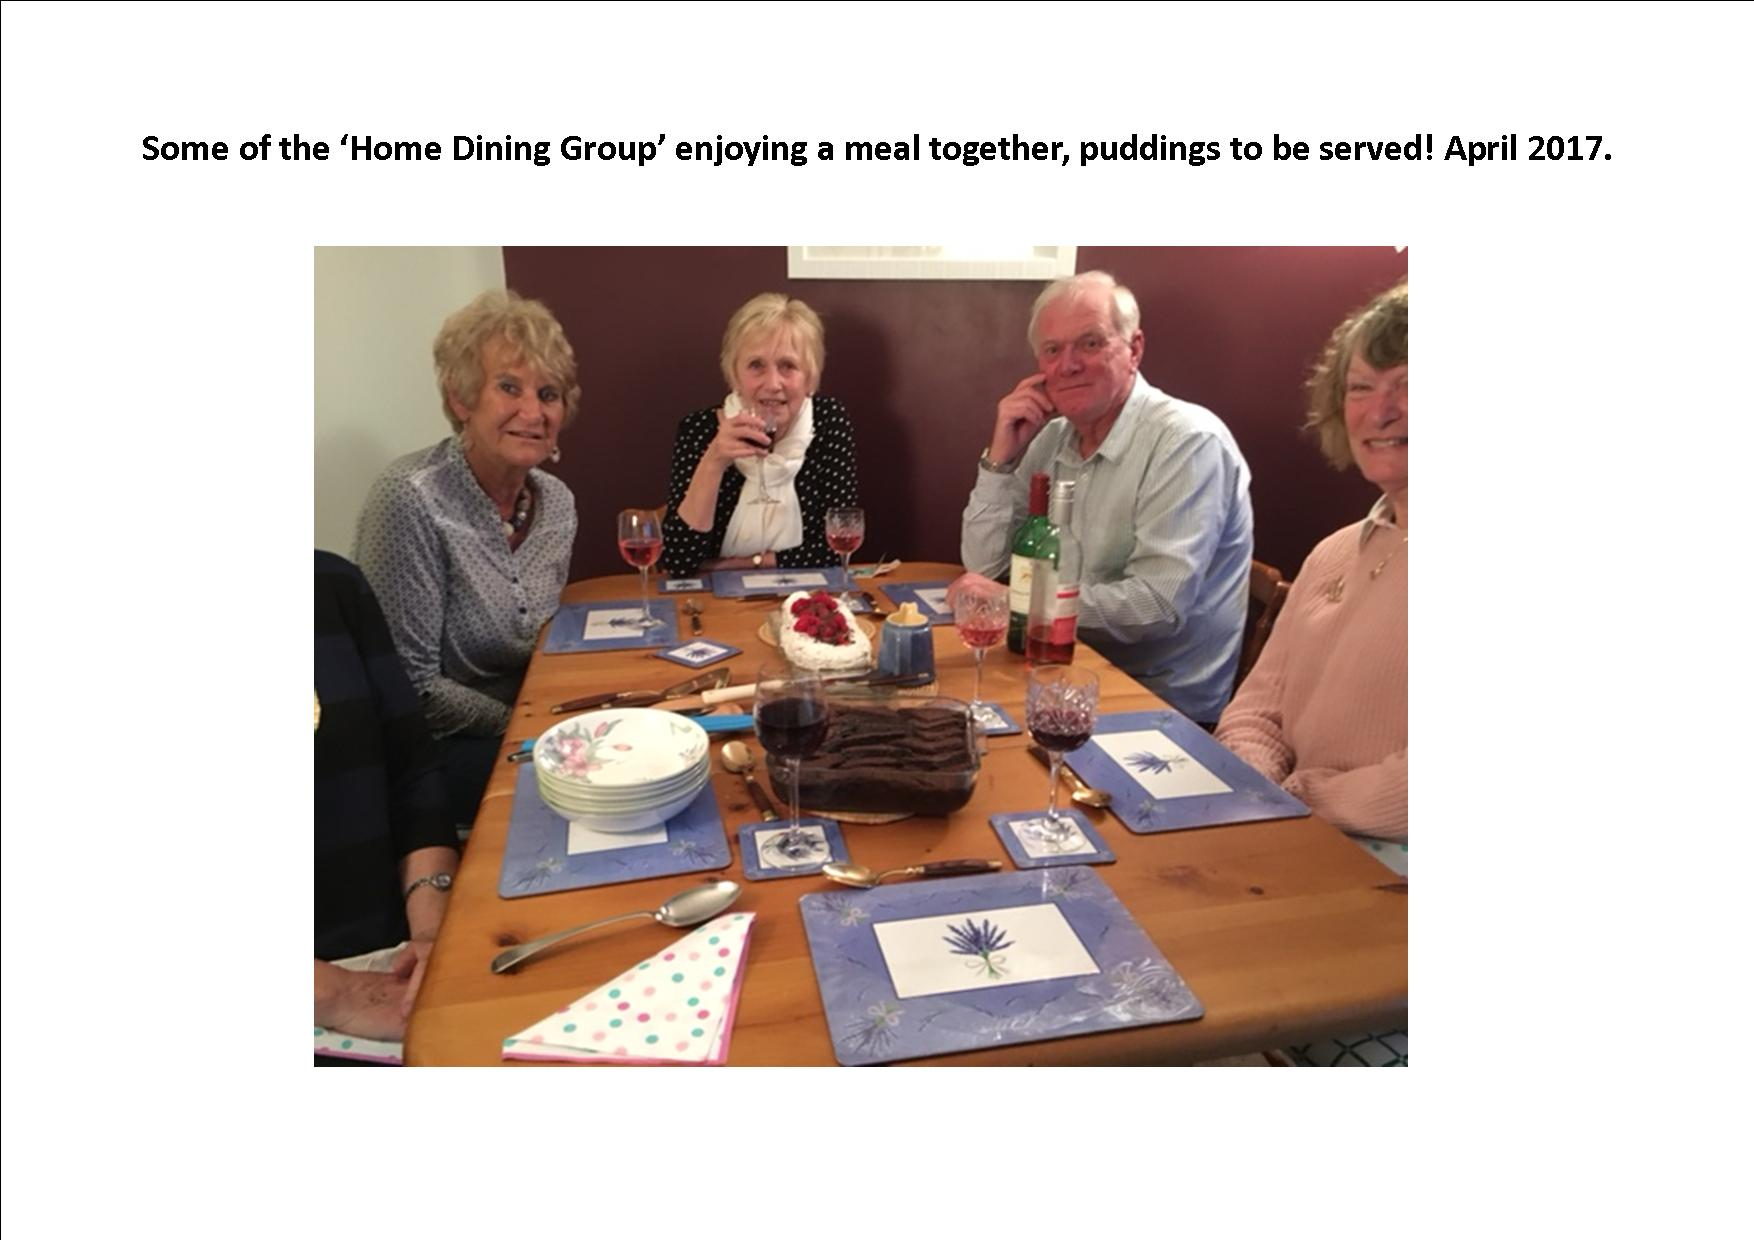 Home dining group.